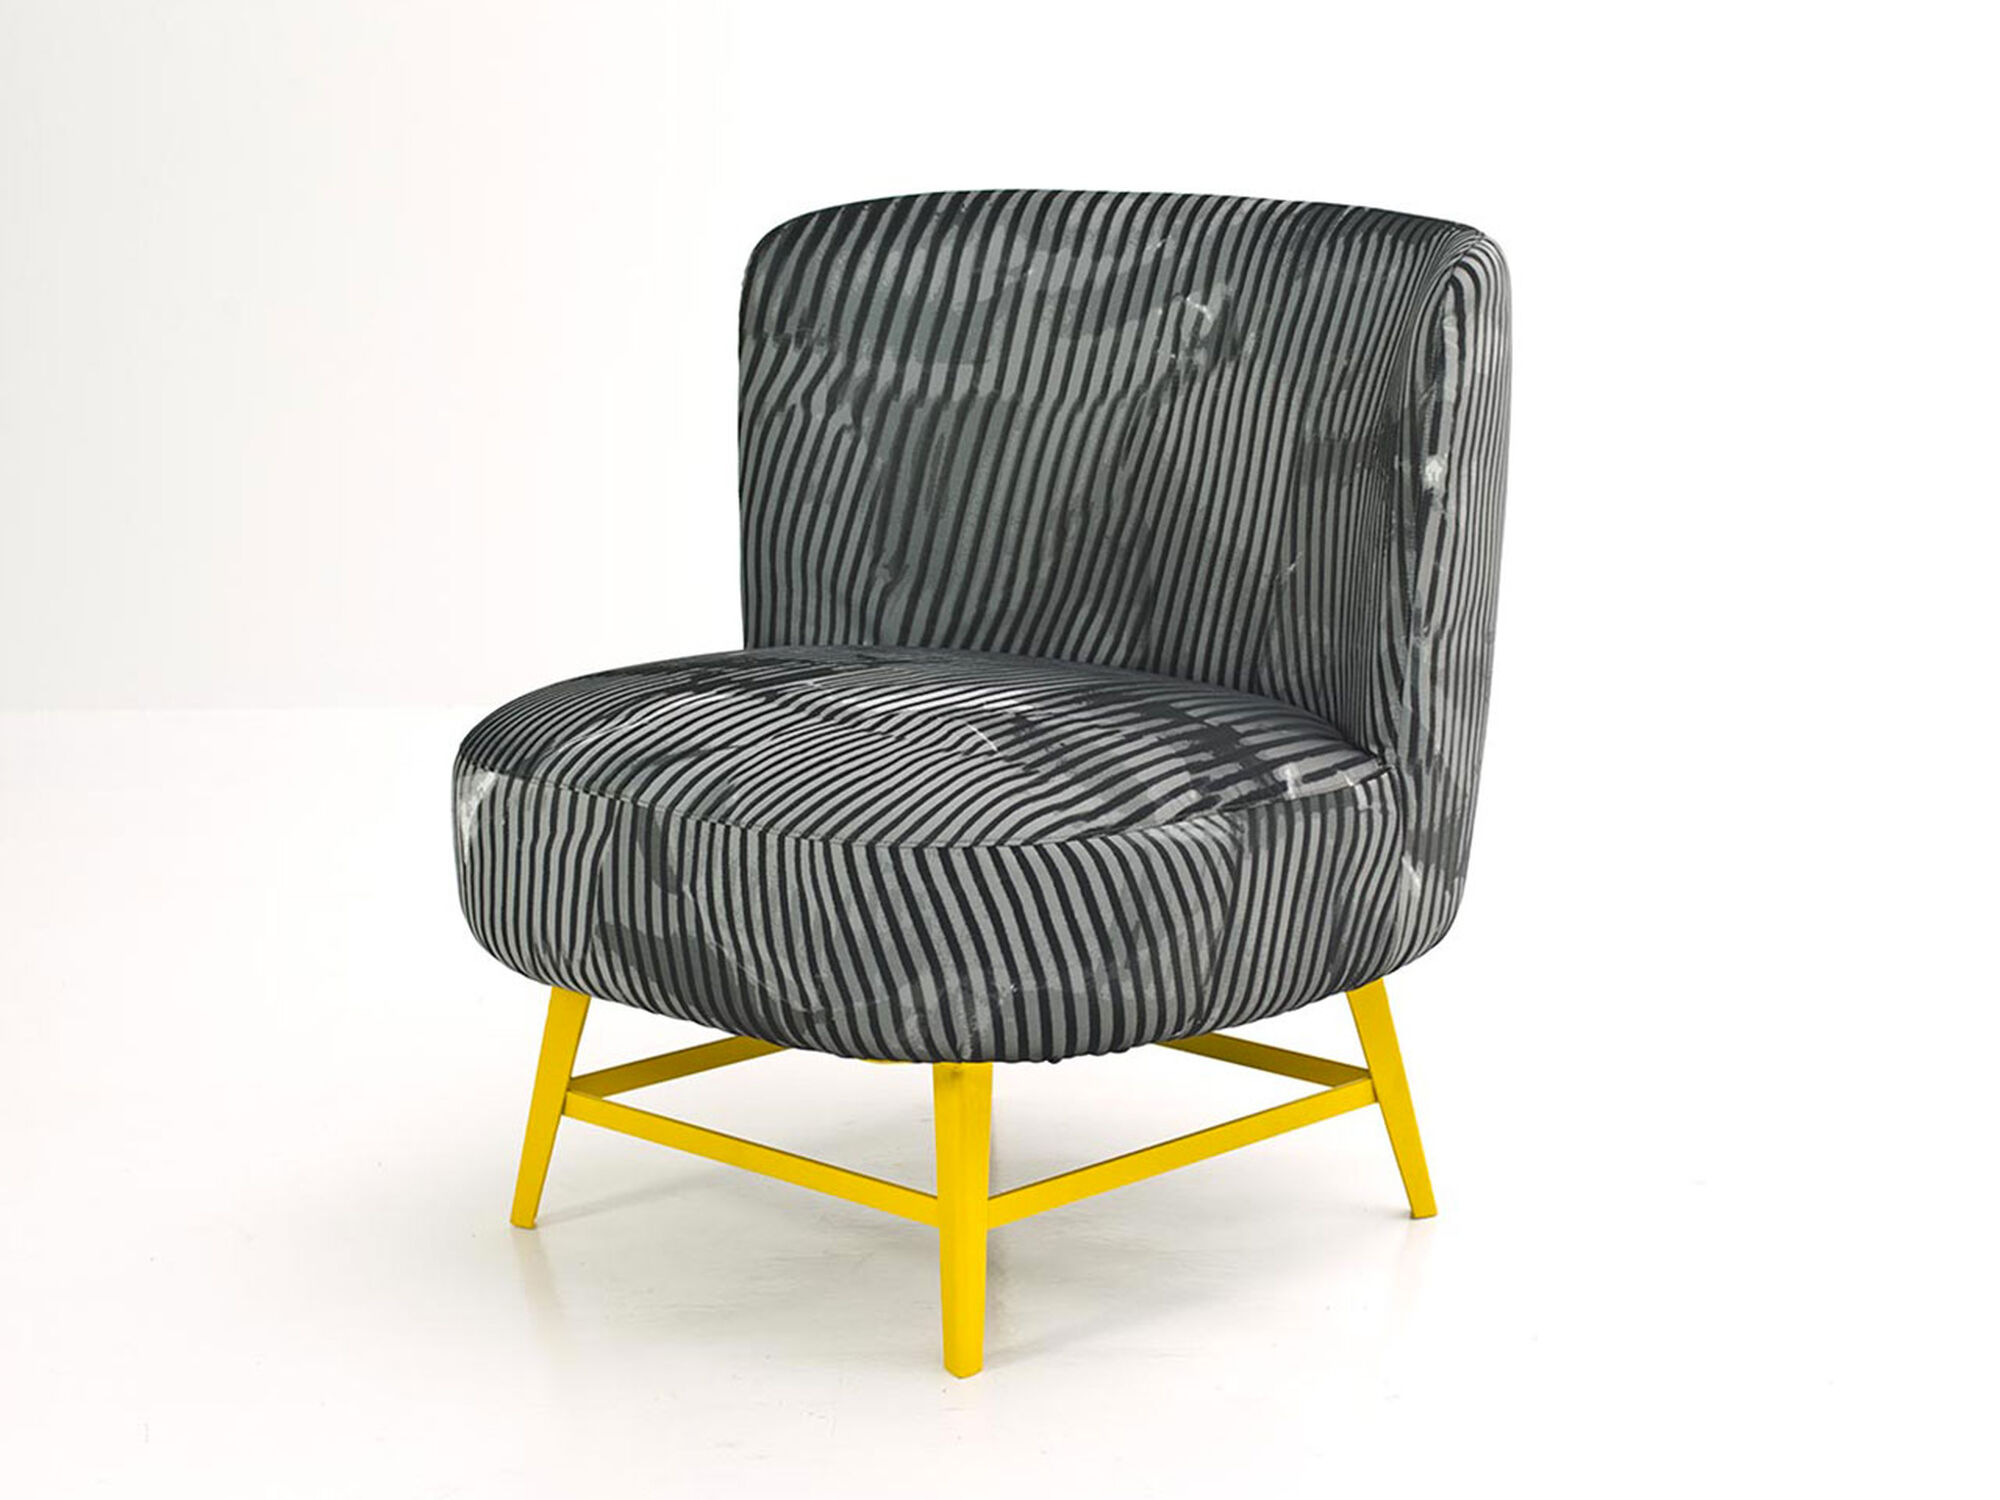 GIMME SHELTER CHAIR 01